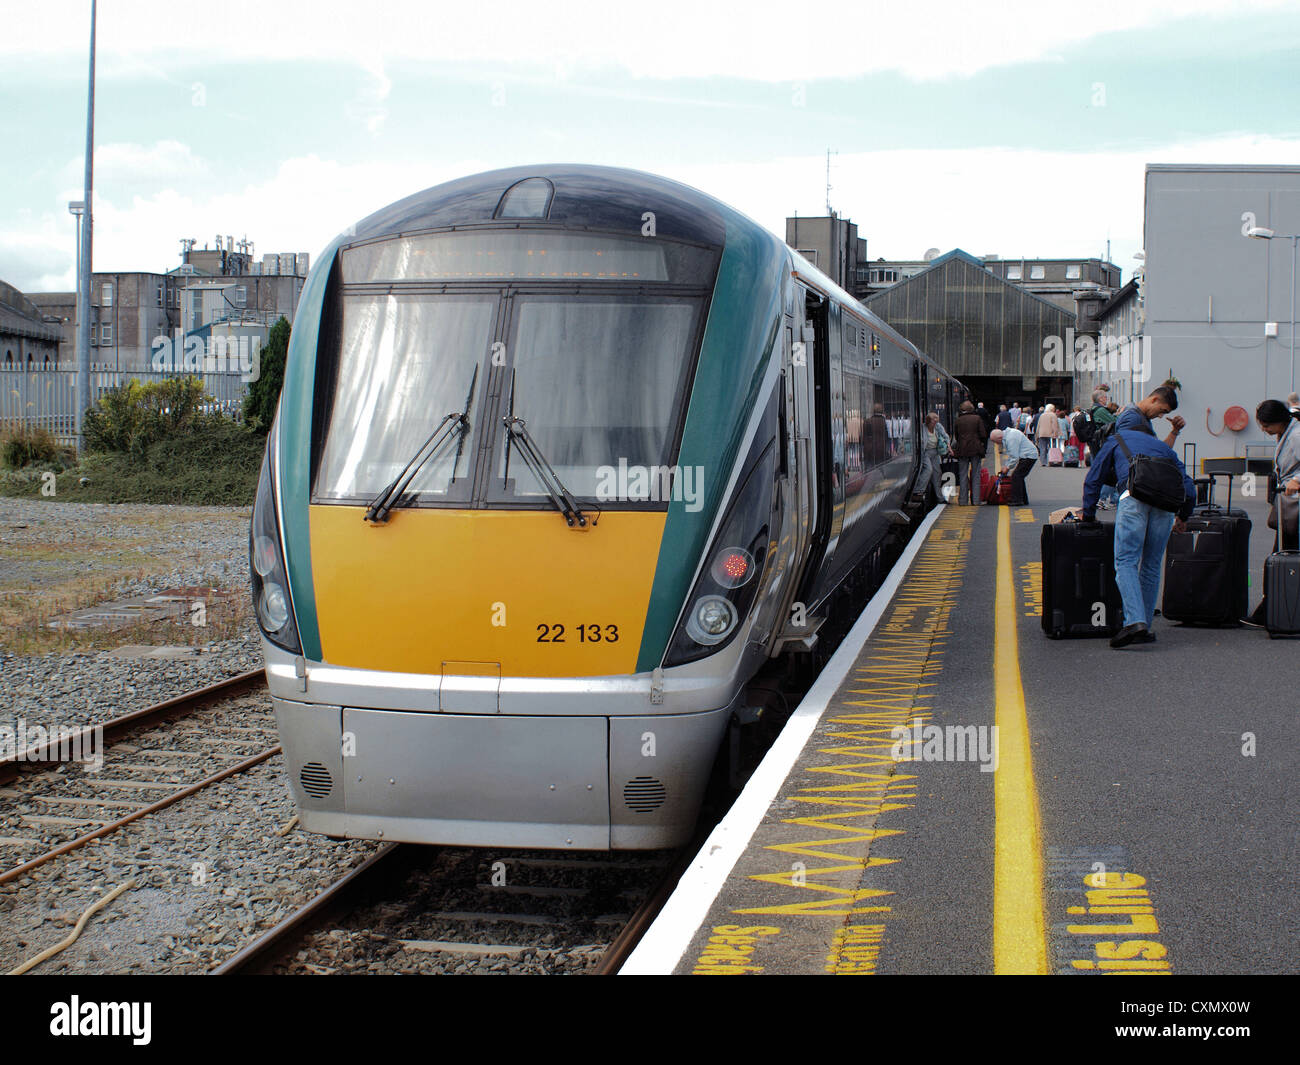 (Larnrod Eireann) Irish Rails 22000 class 'I.C.R.' diesel multiple Intercity railcars at Galway station - Stock Image